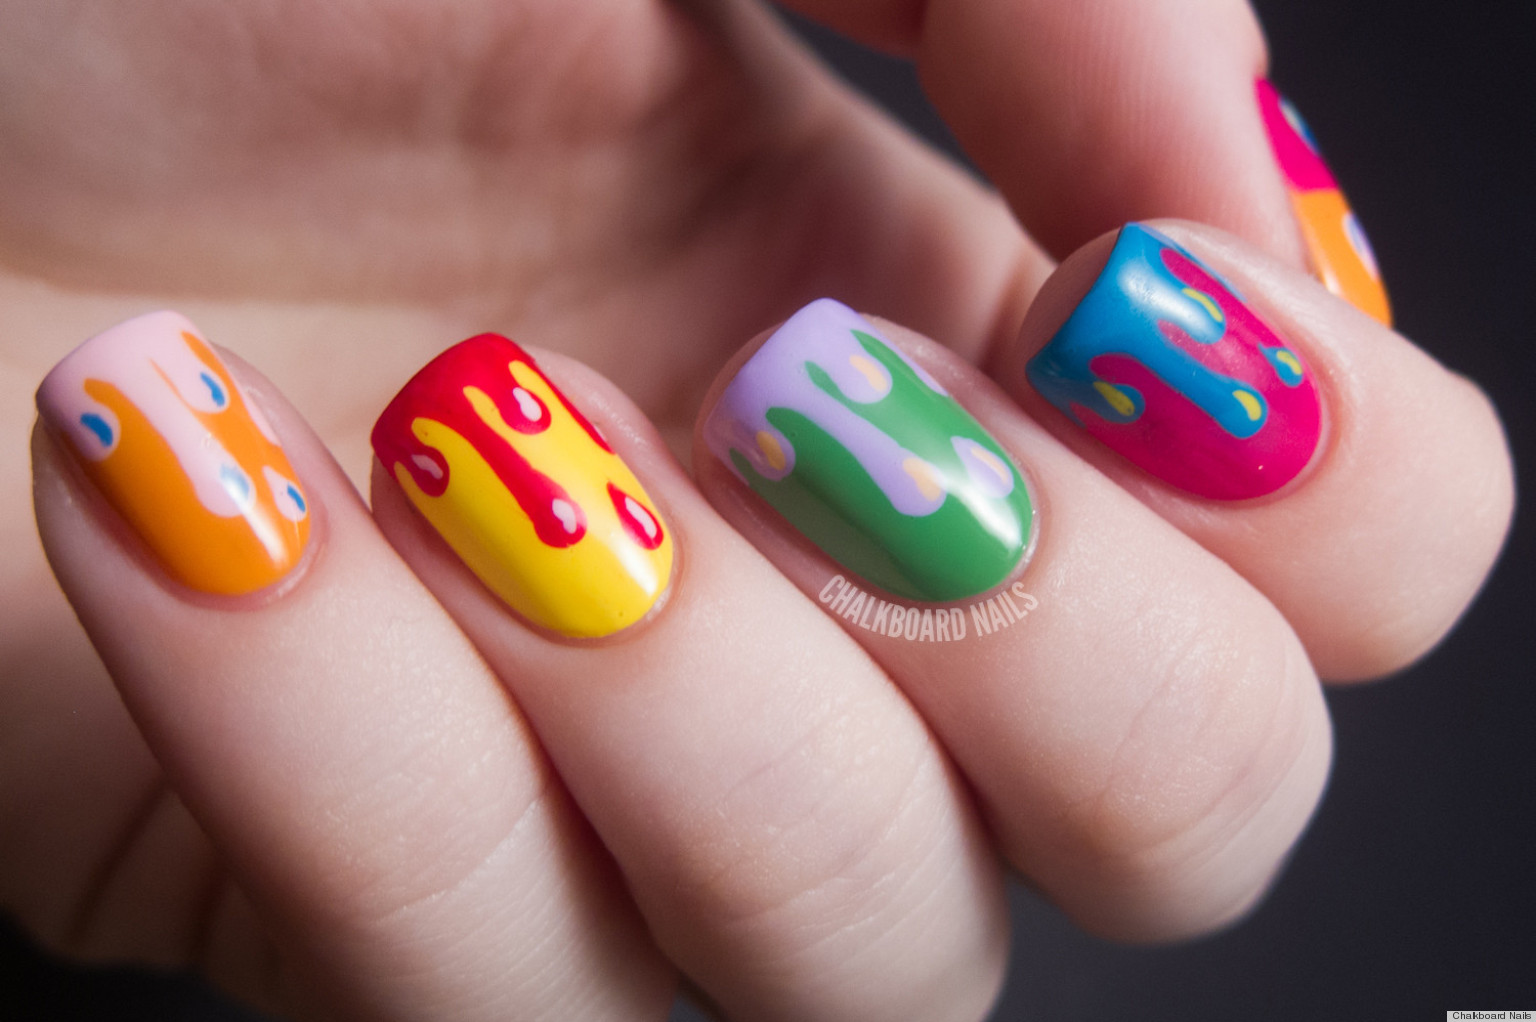 Diy Nail Ideas Paint Drip Art And More Of Our Manicures From This Weekend Photos Huffpost